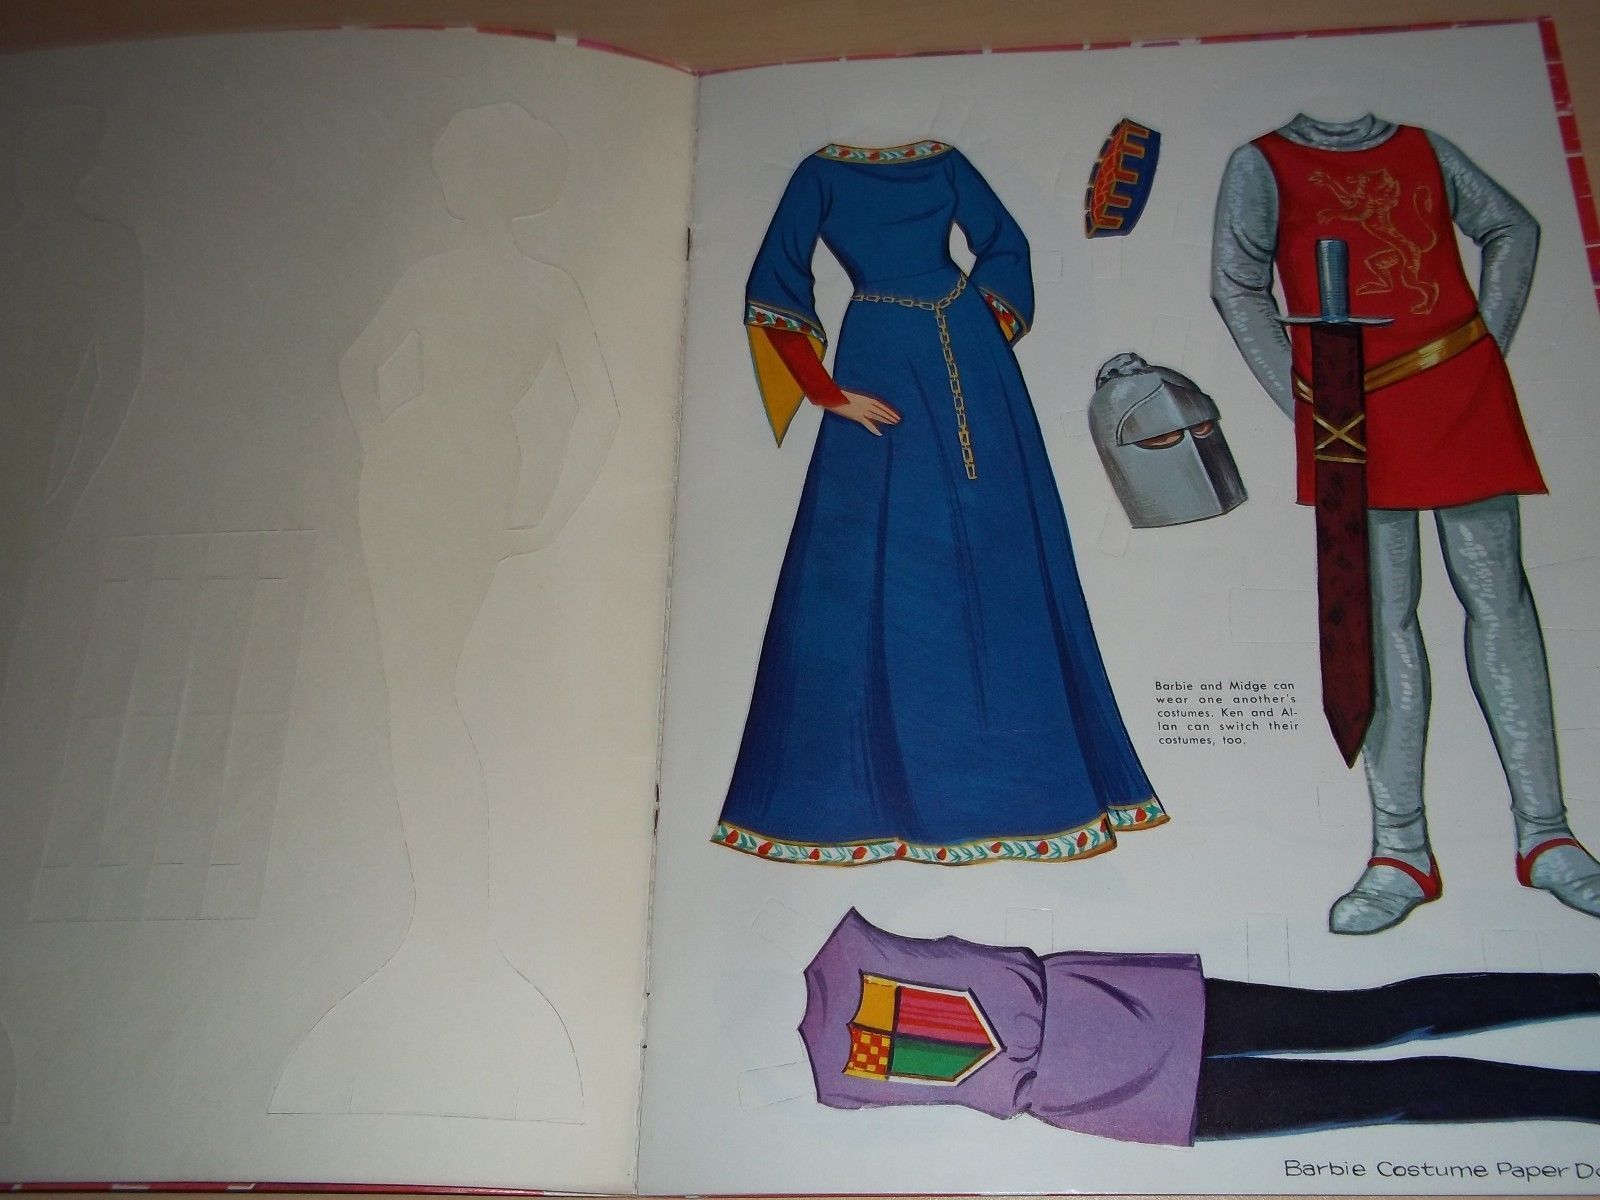 Vintage Barbie Ken Little Theater Costume Dolls Paper Doll Book by Whitman | eBay